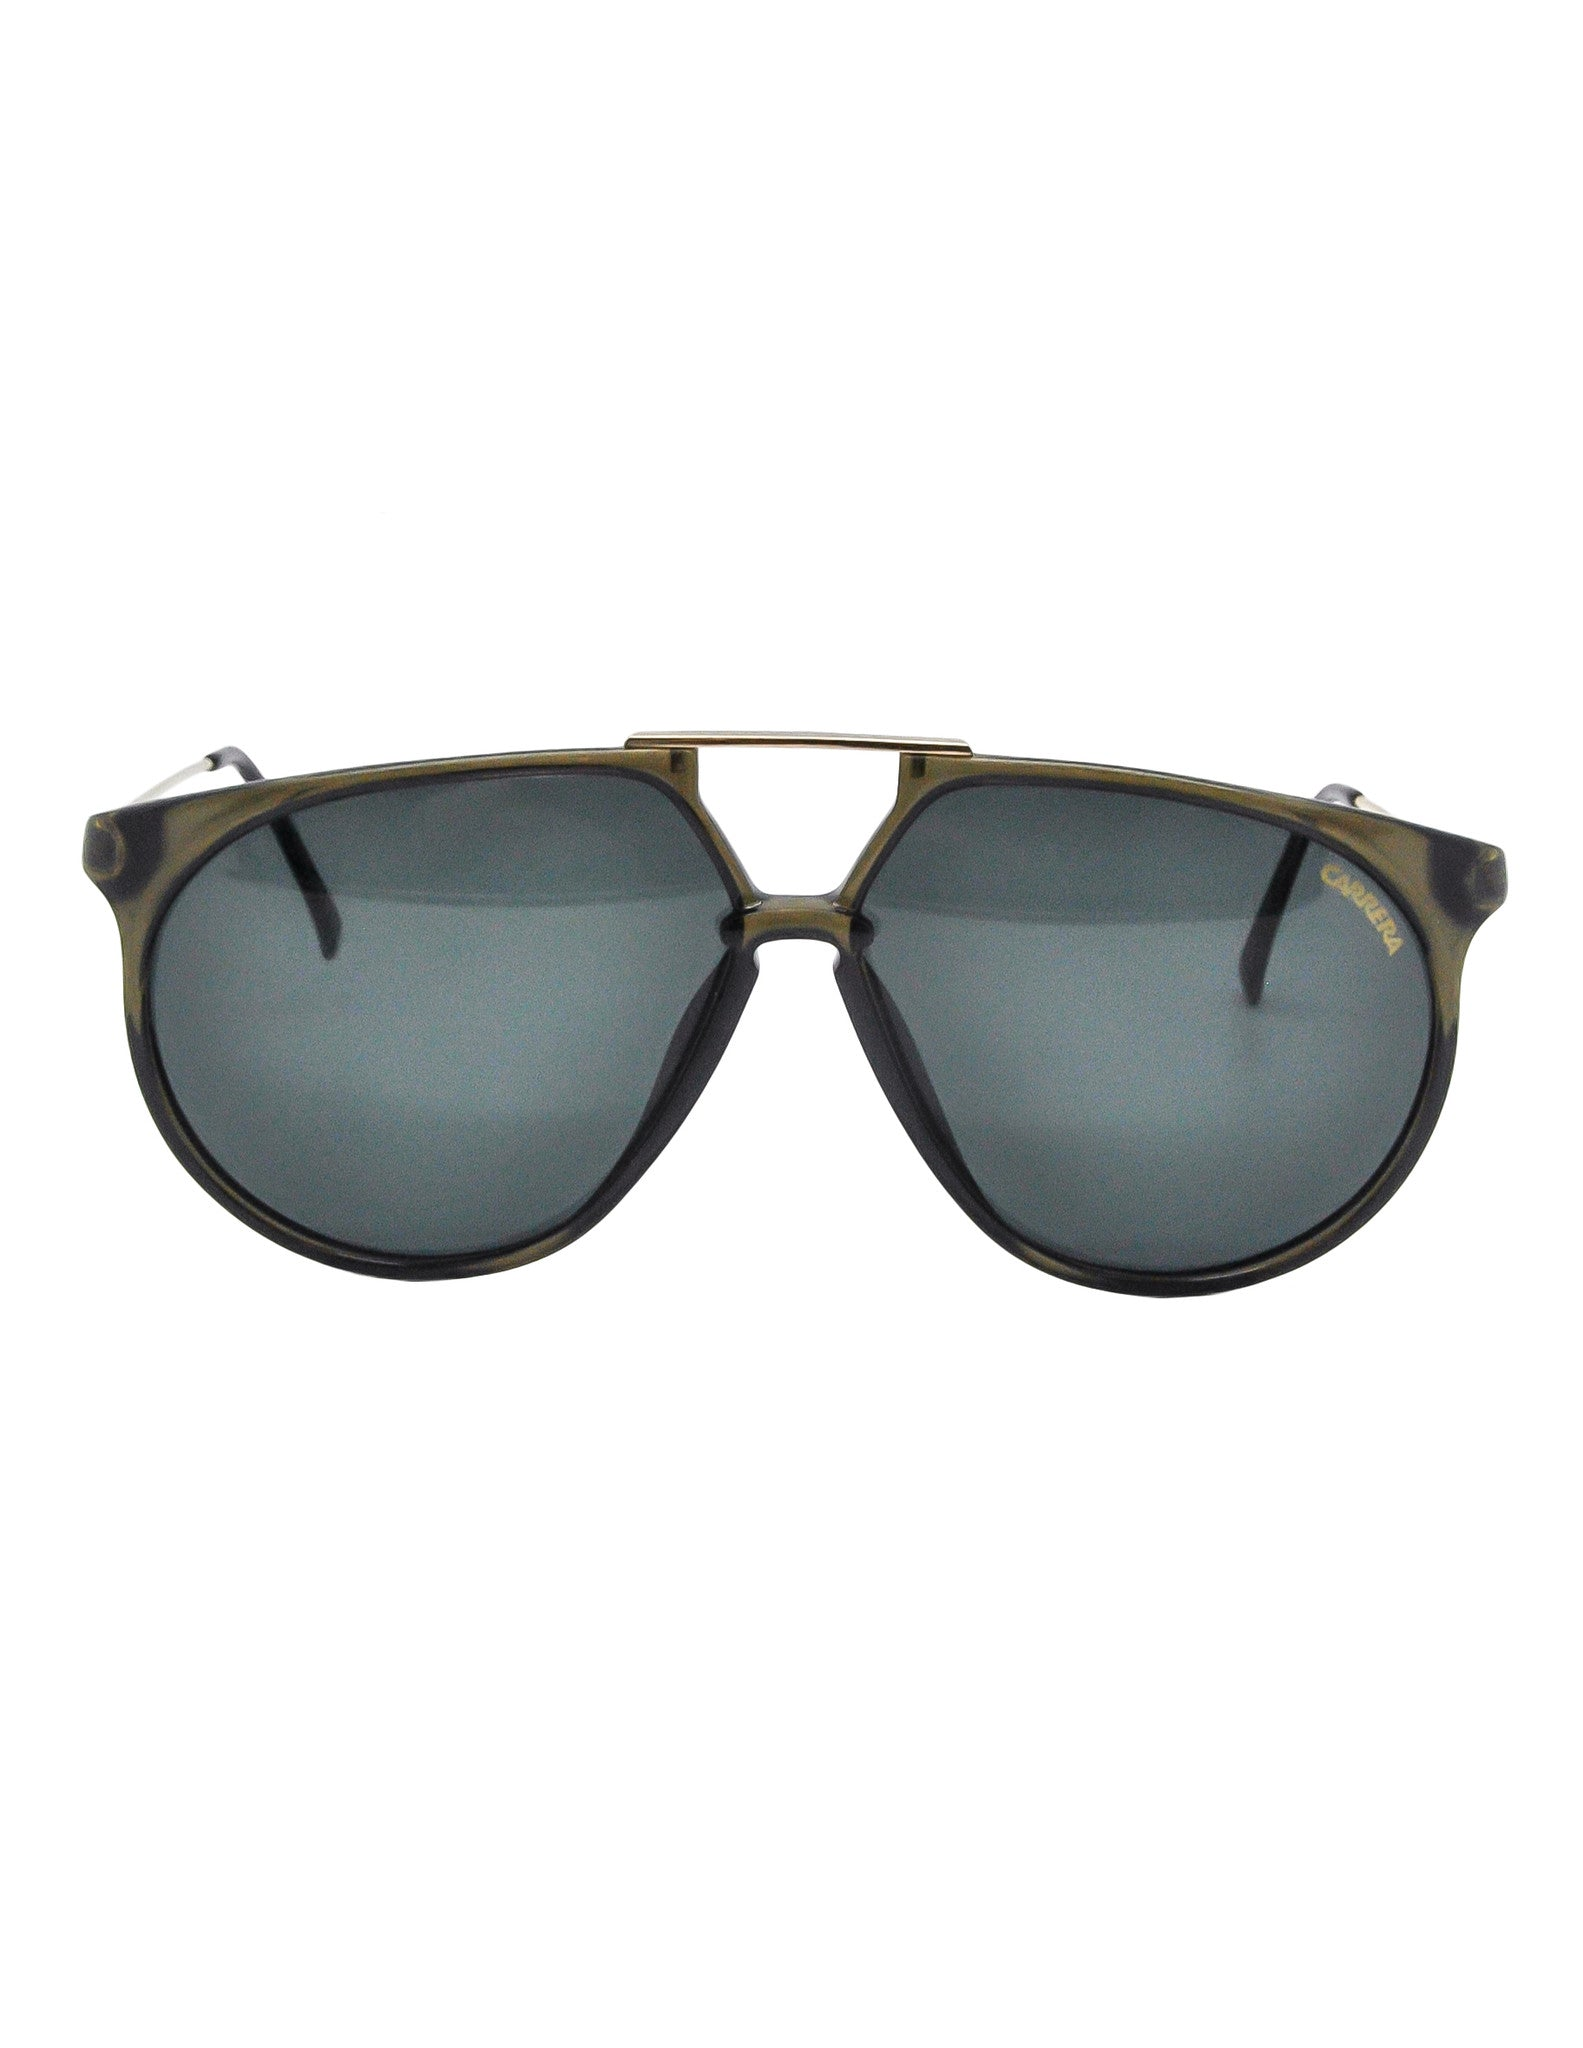 Carrera Vintage Smoke Grey Aviator Sunglasses 5415 - Amarcord Vintage Fashion  - 1